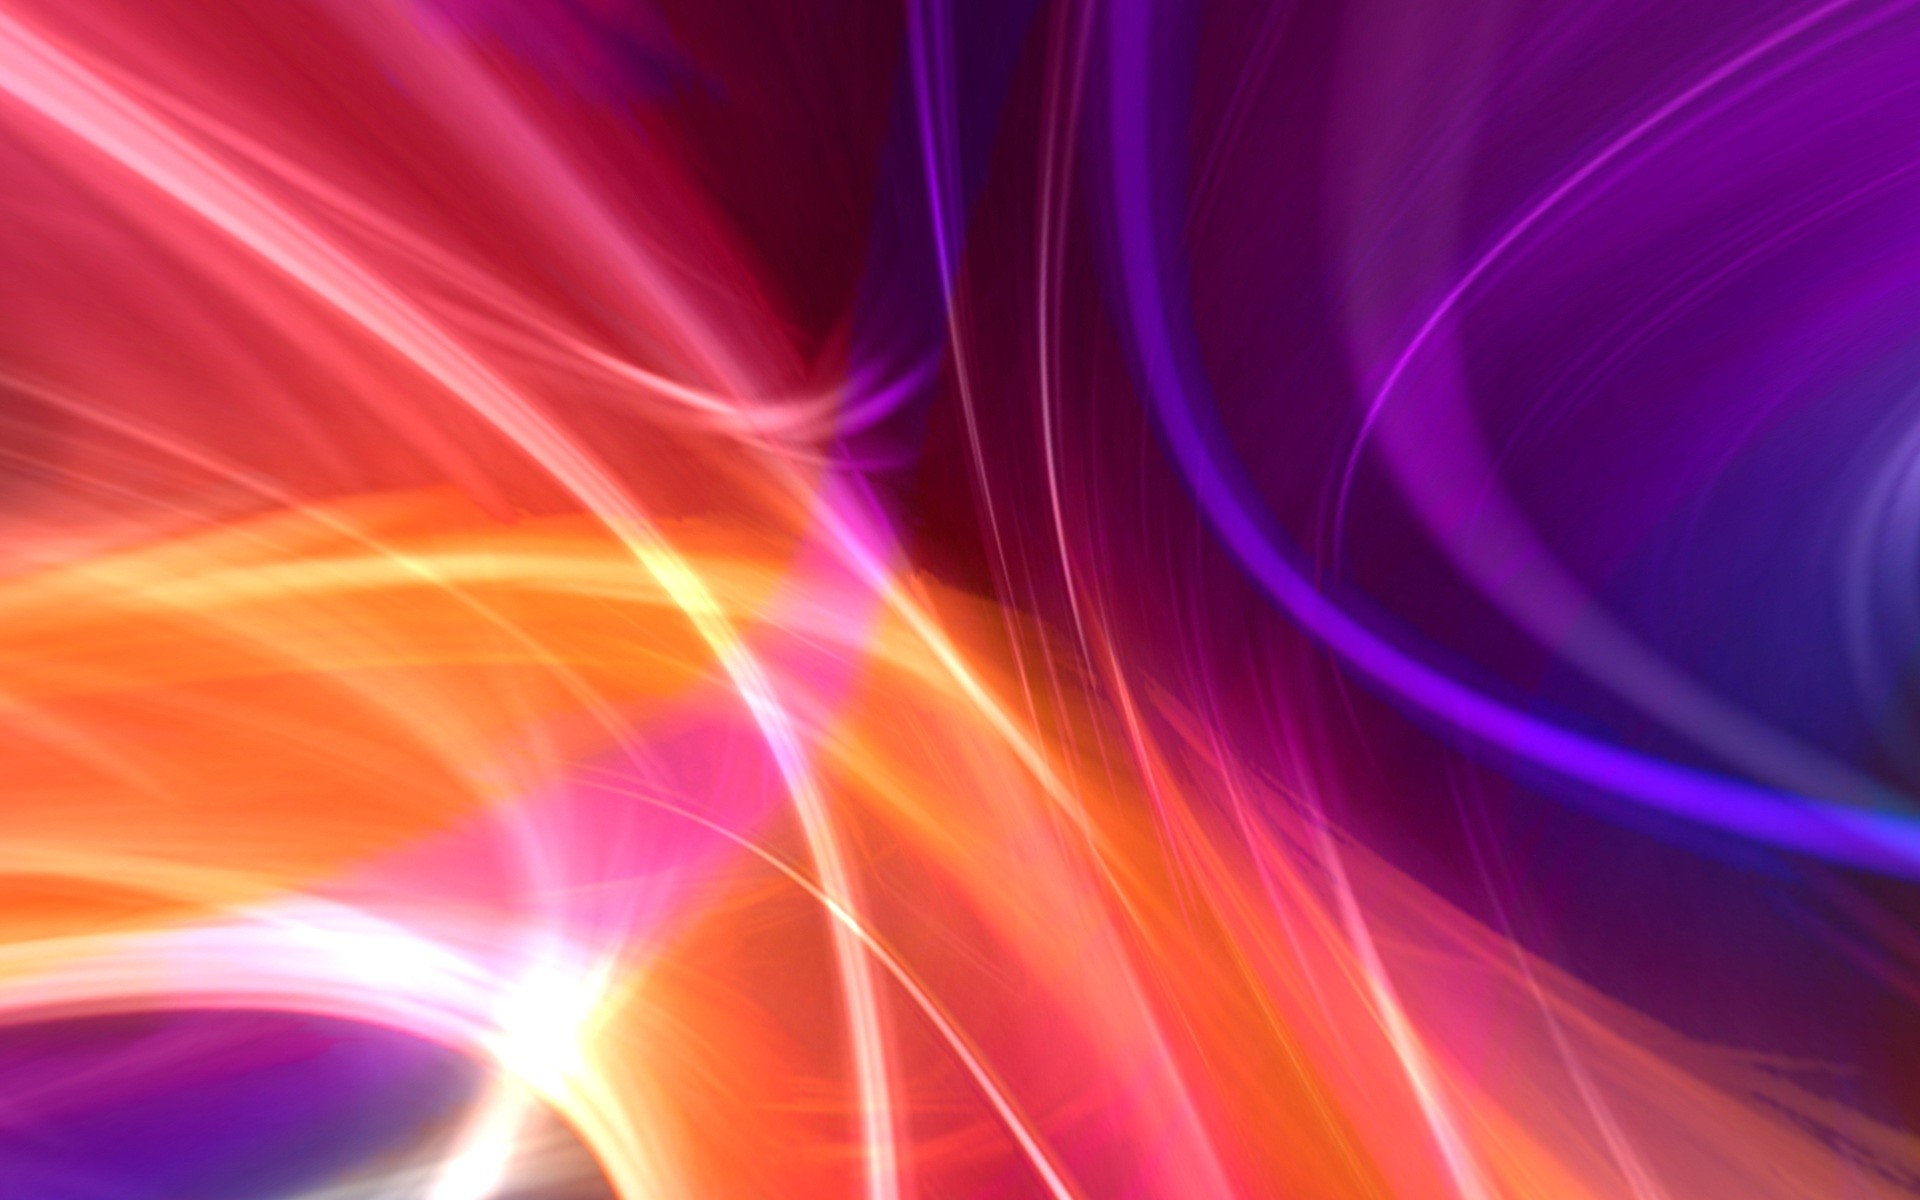 Purple and Orange Backgrounds 48 images